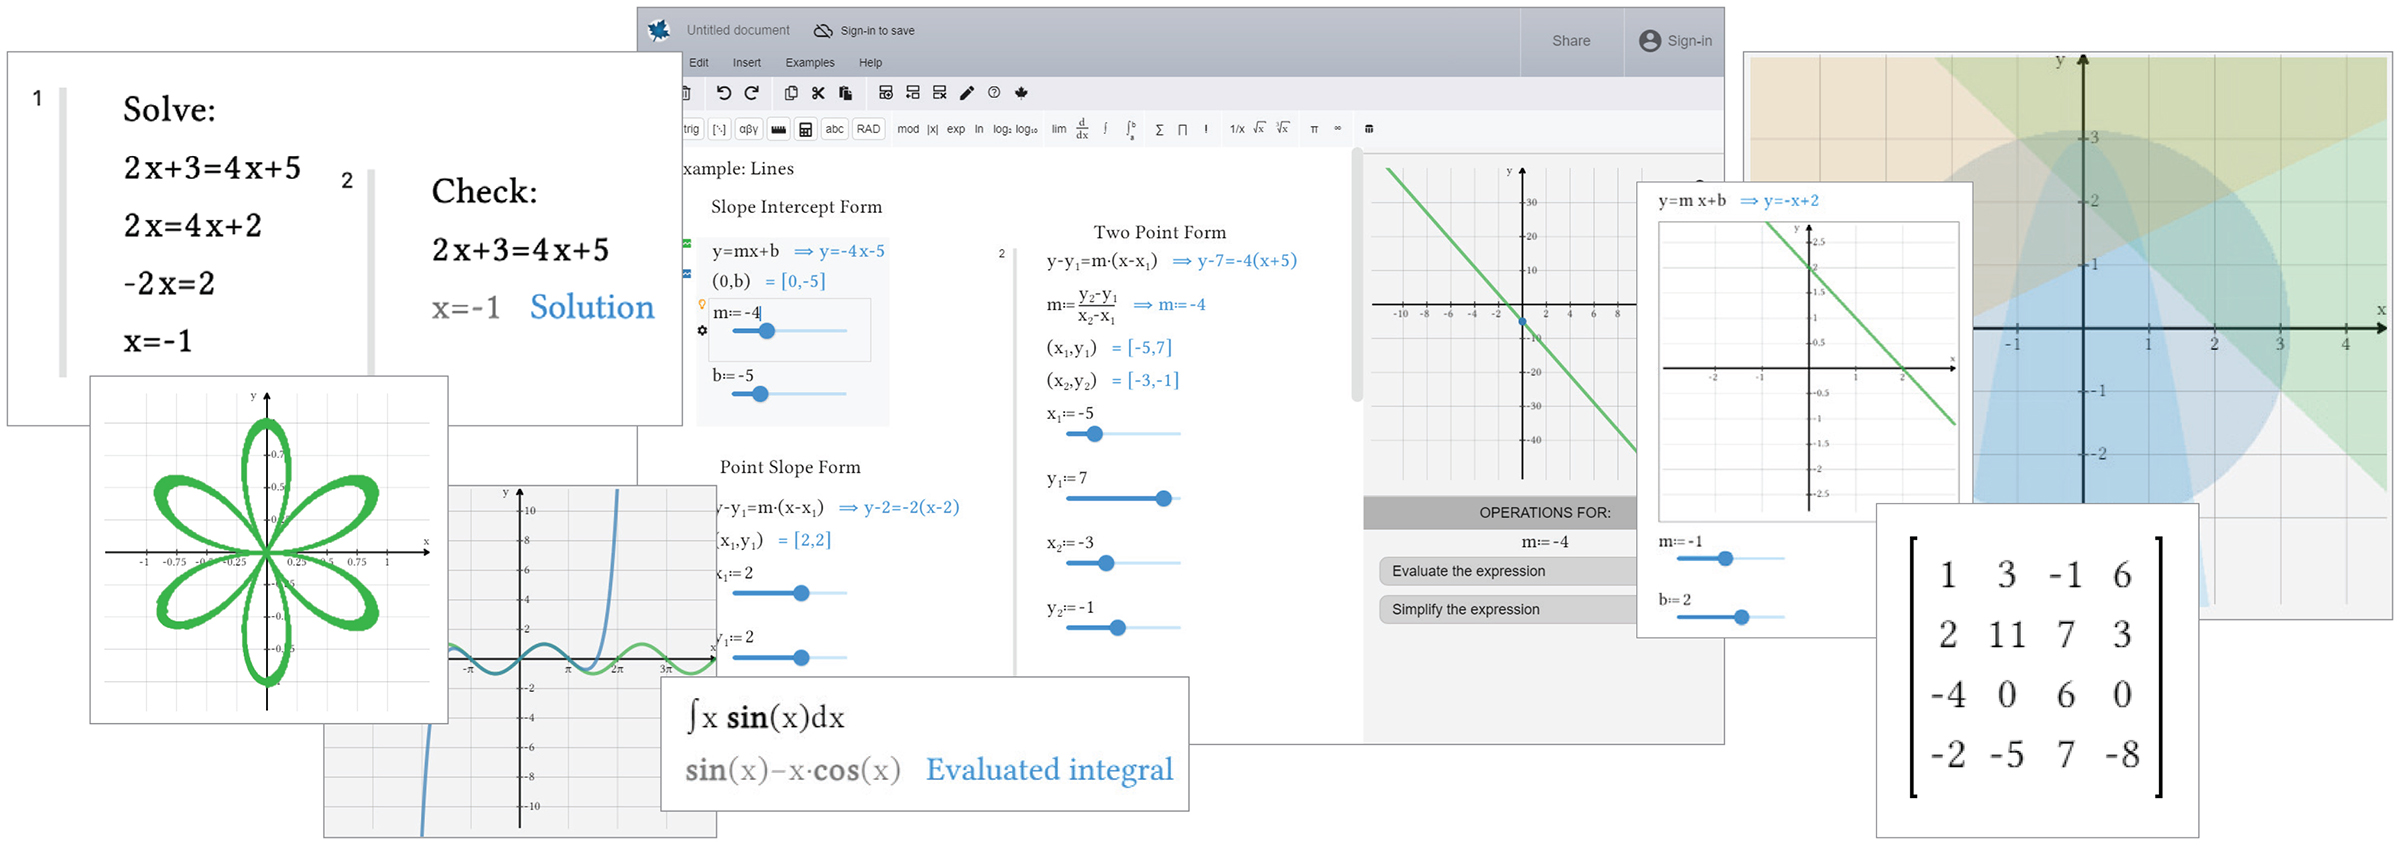 Maplesoft™ launches new online math environment dedicated to teaching and learning